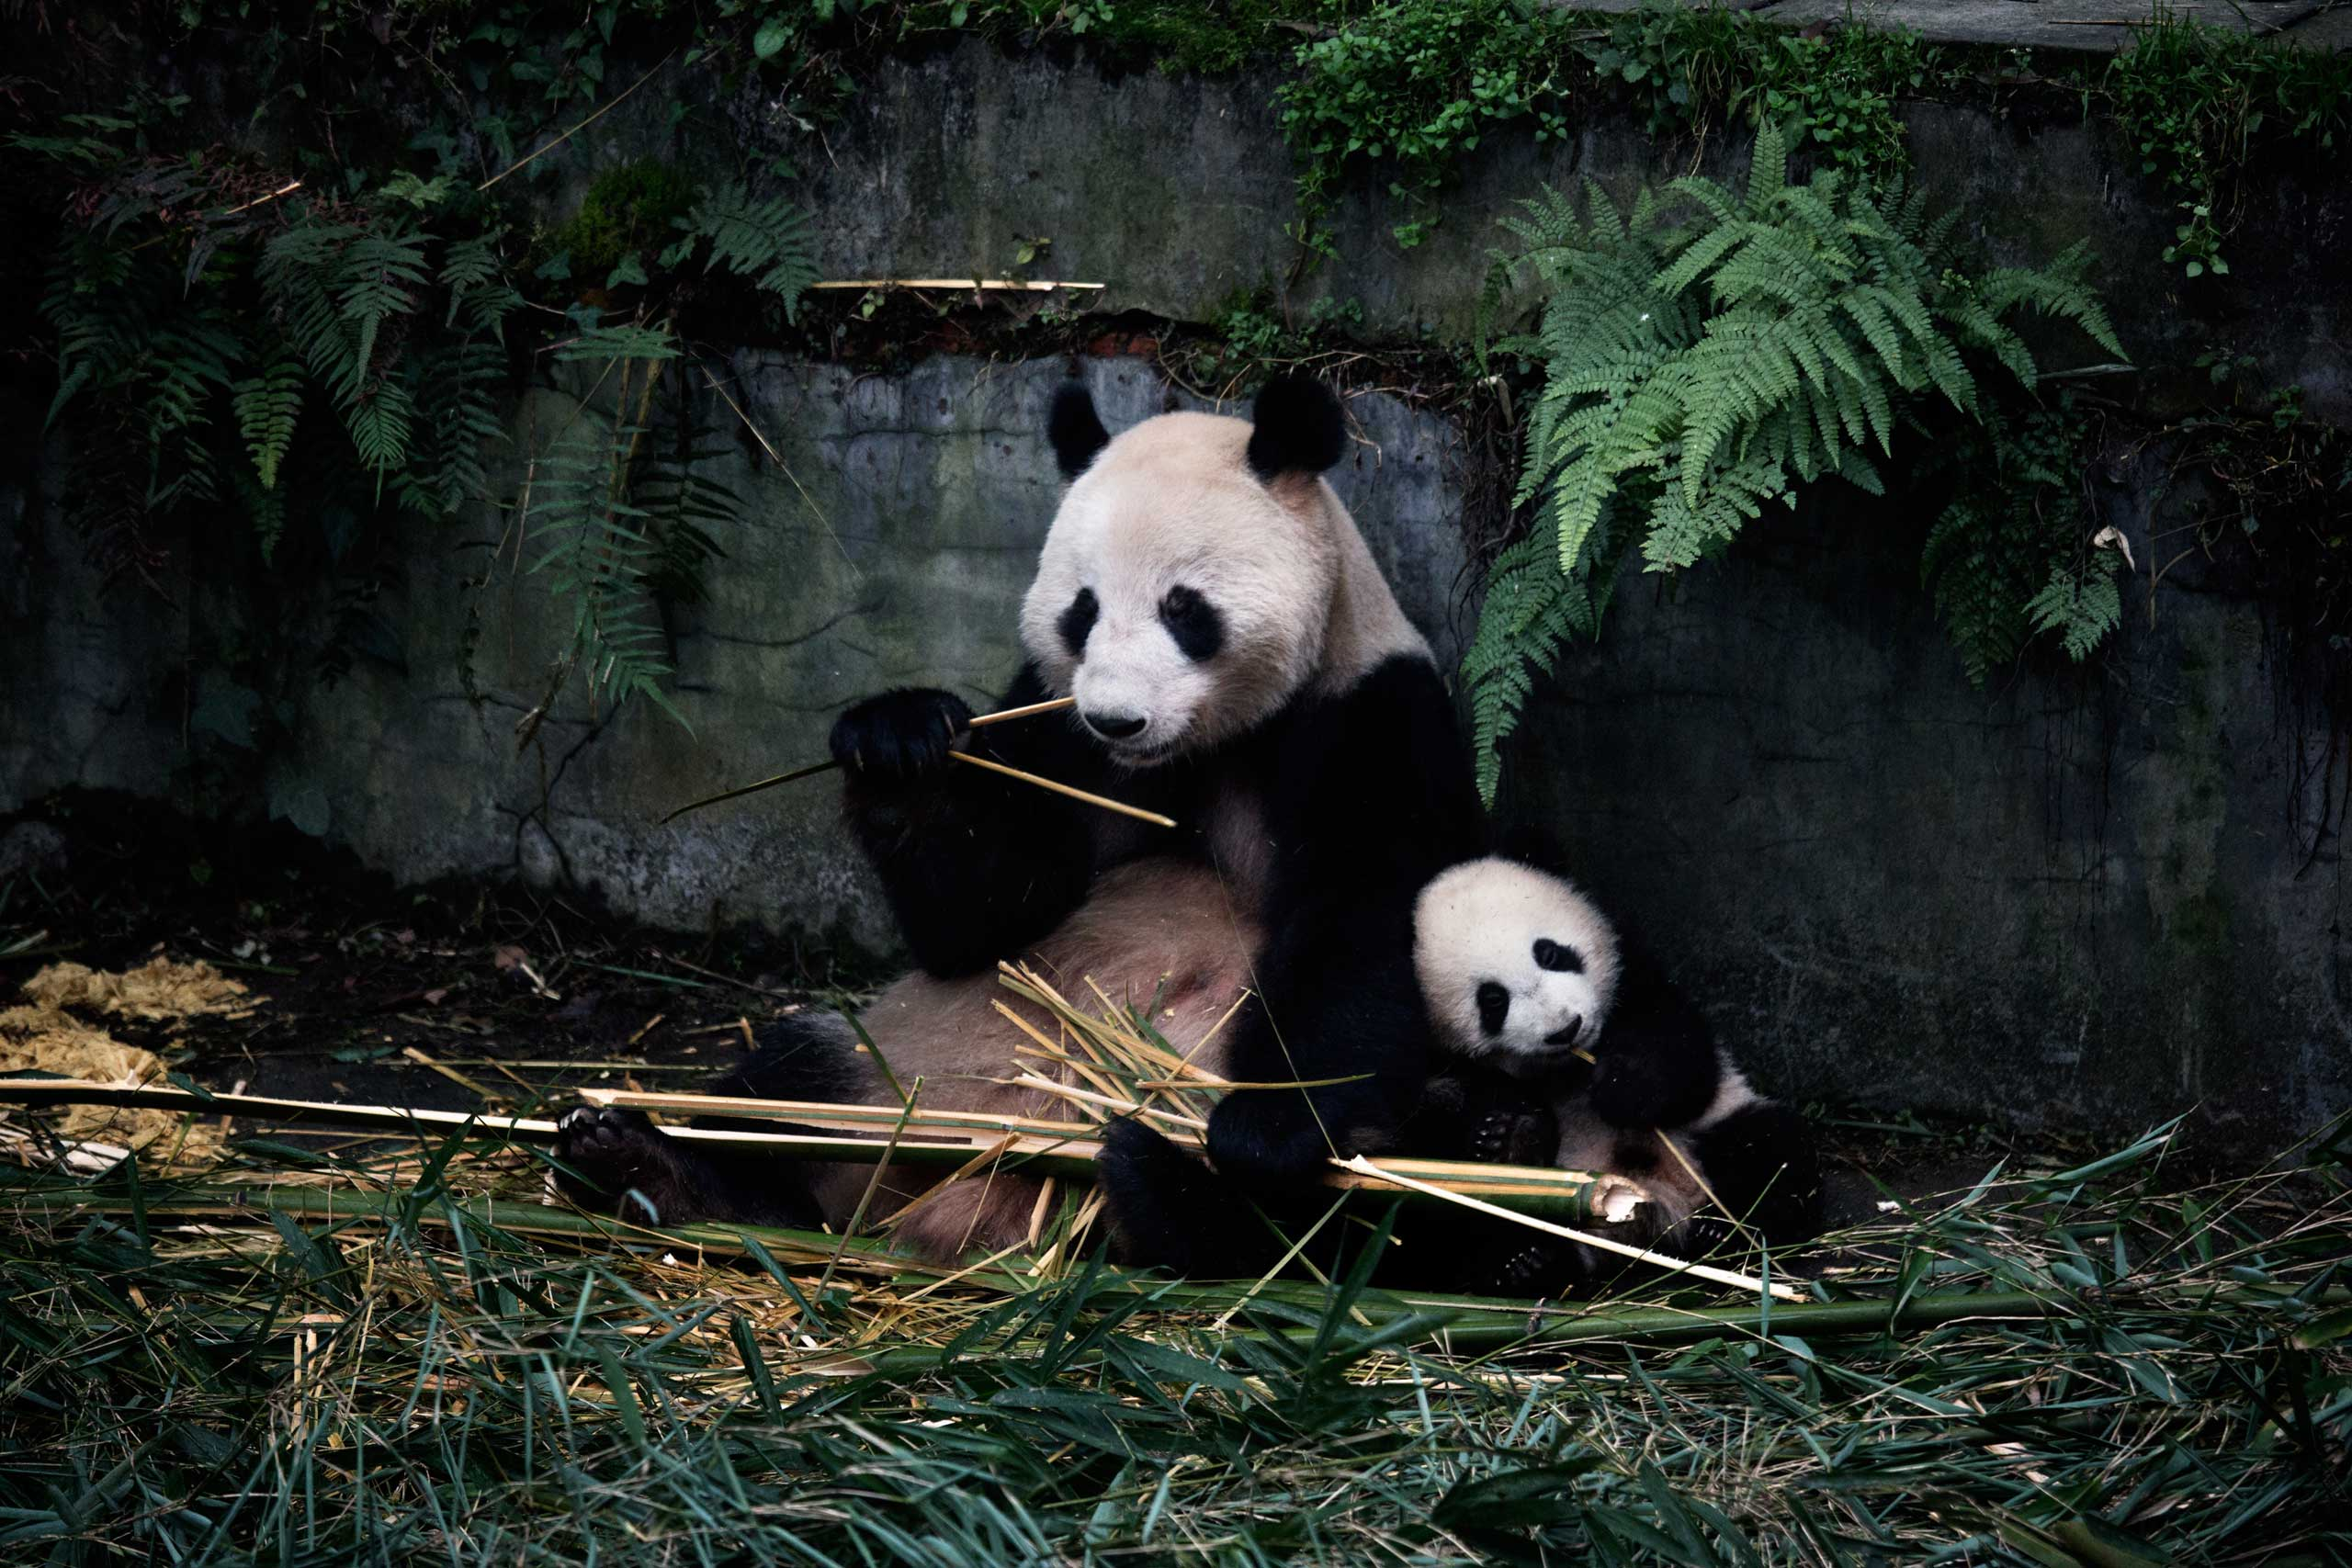 A panda and her baby eat bamboo in their enclosure at the Bifengxia Panda Base in Ya'an, Sichuan Province, China, Dec. 3, 2015.